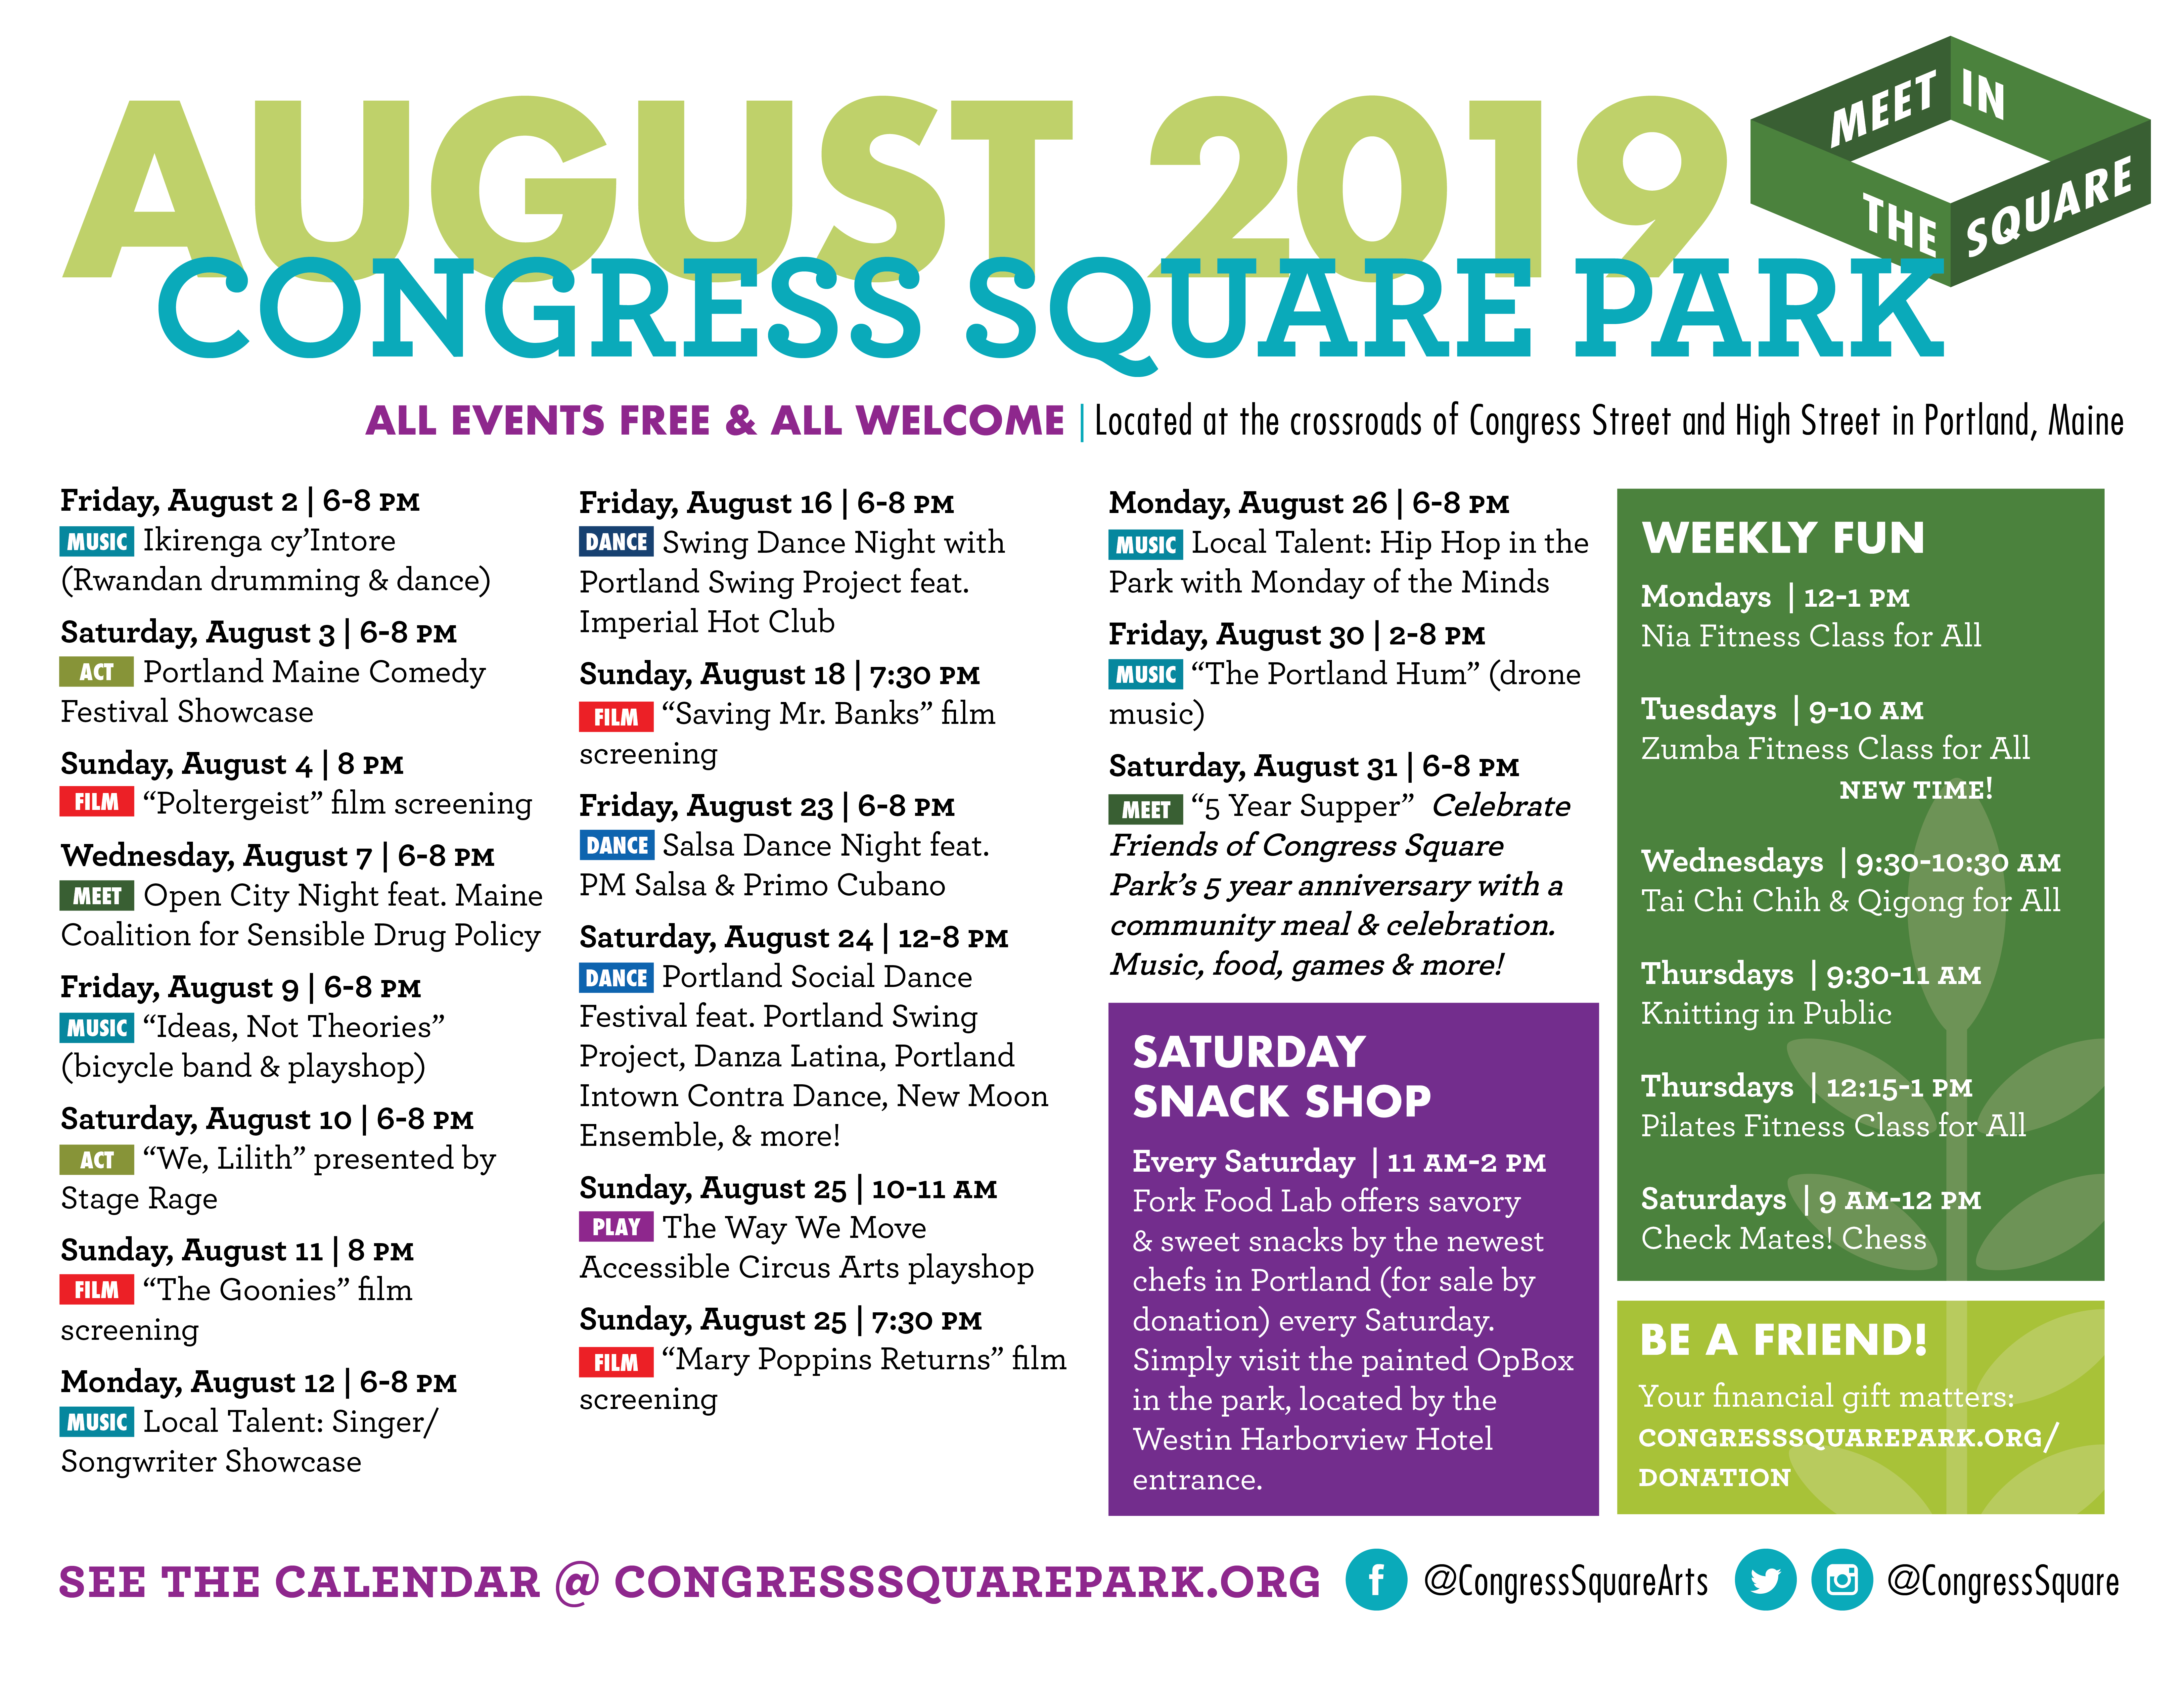 August Printable Calendar Available - Friends of Congress